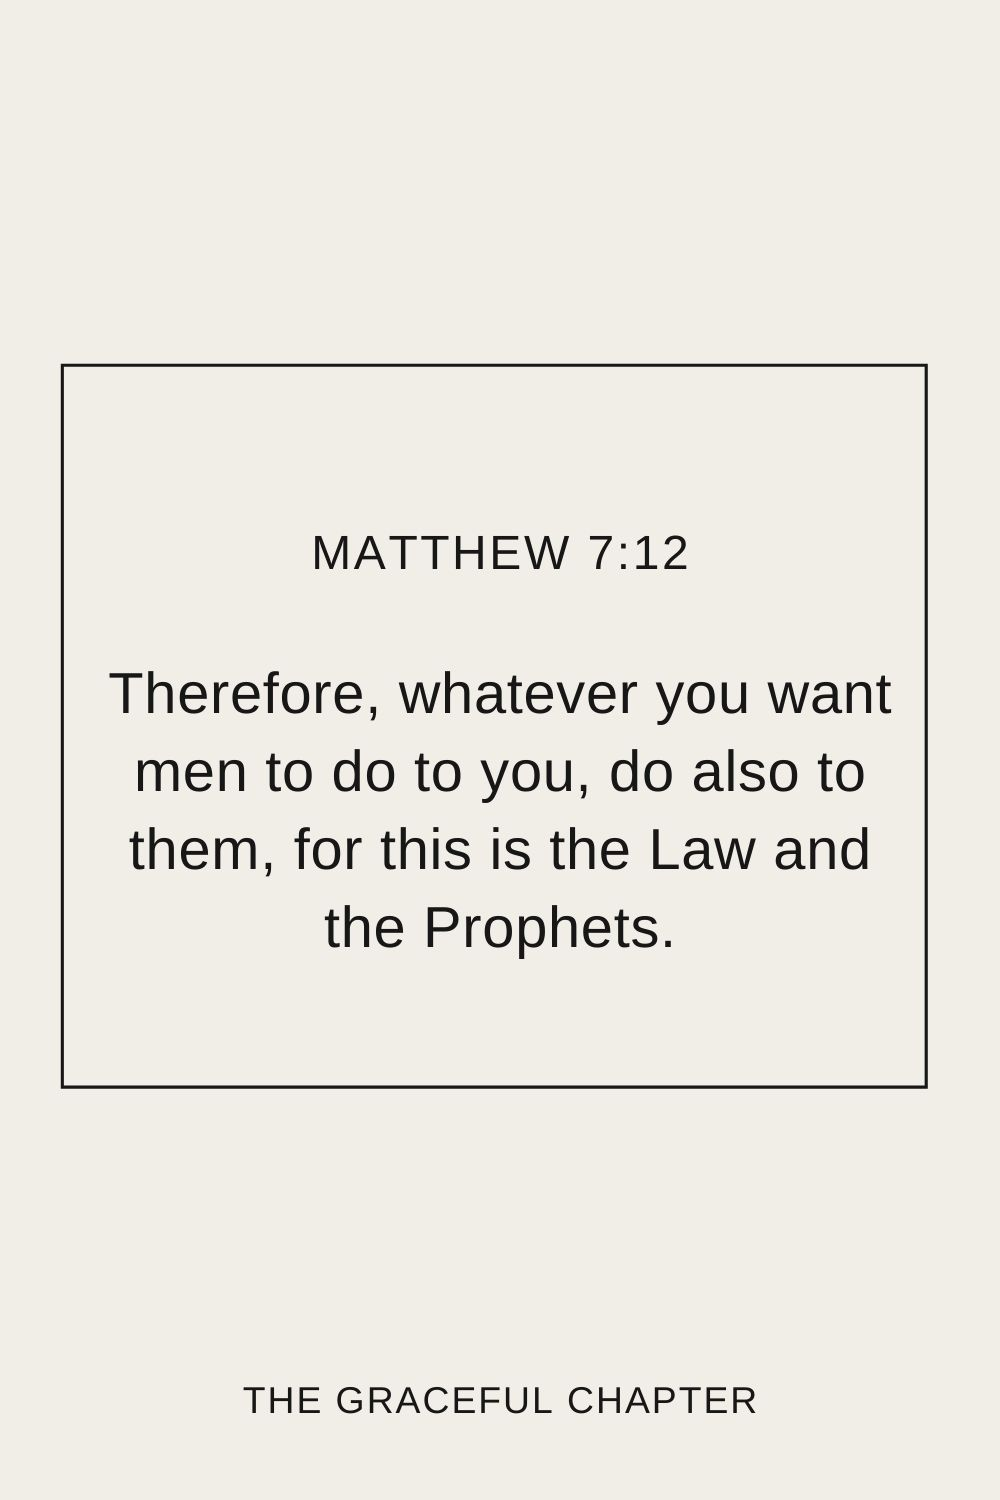 Therefore, whatever you want men to do to you, do also to them, for this is the Law and the Prophets. Matthew 7:12